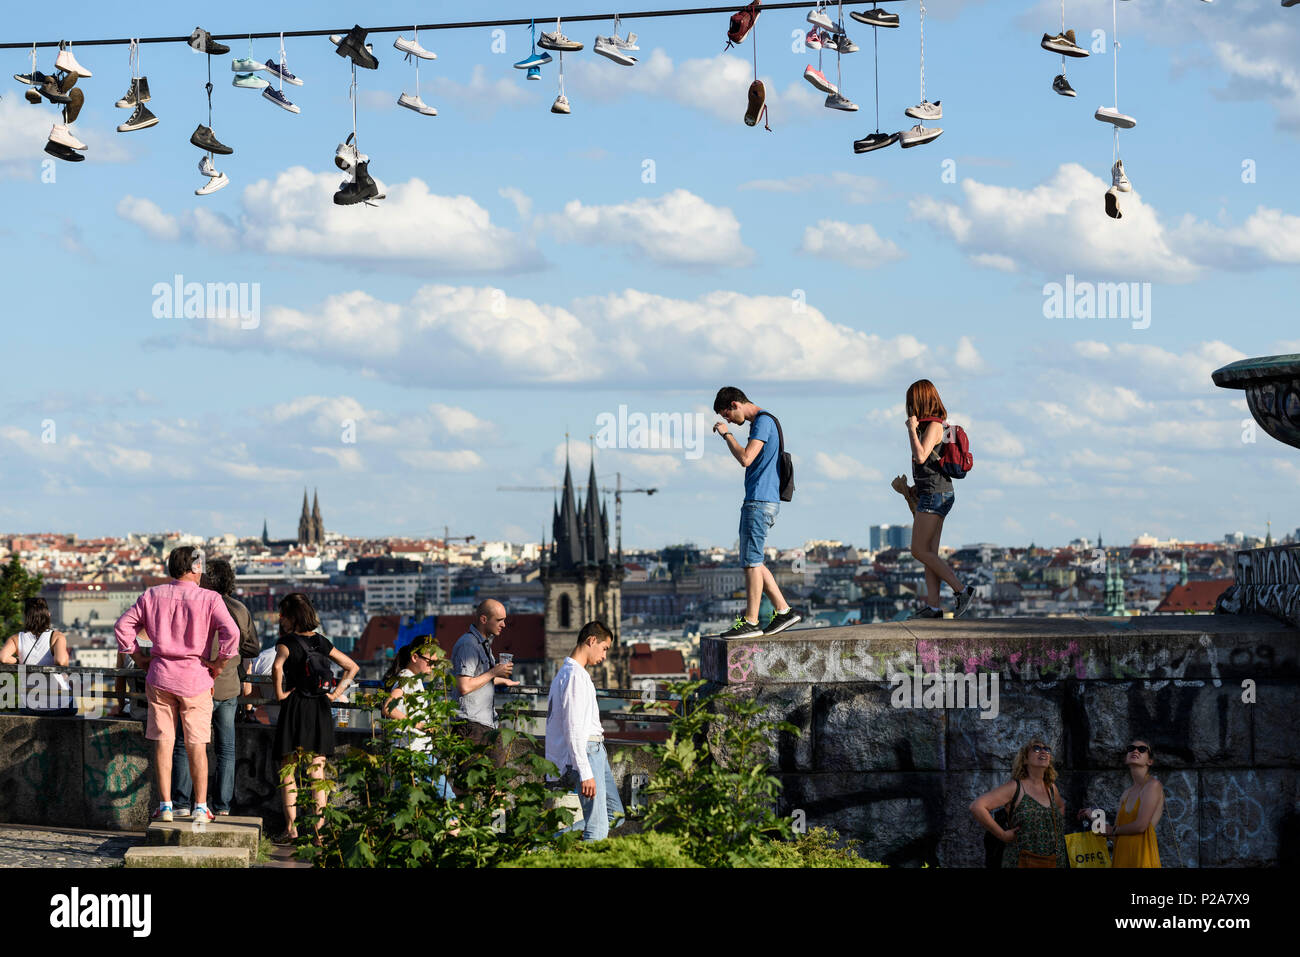 Prague. Czech Republic. People at Letná Park, which provides a viewpoint for views across the city. Stock Photo